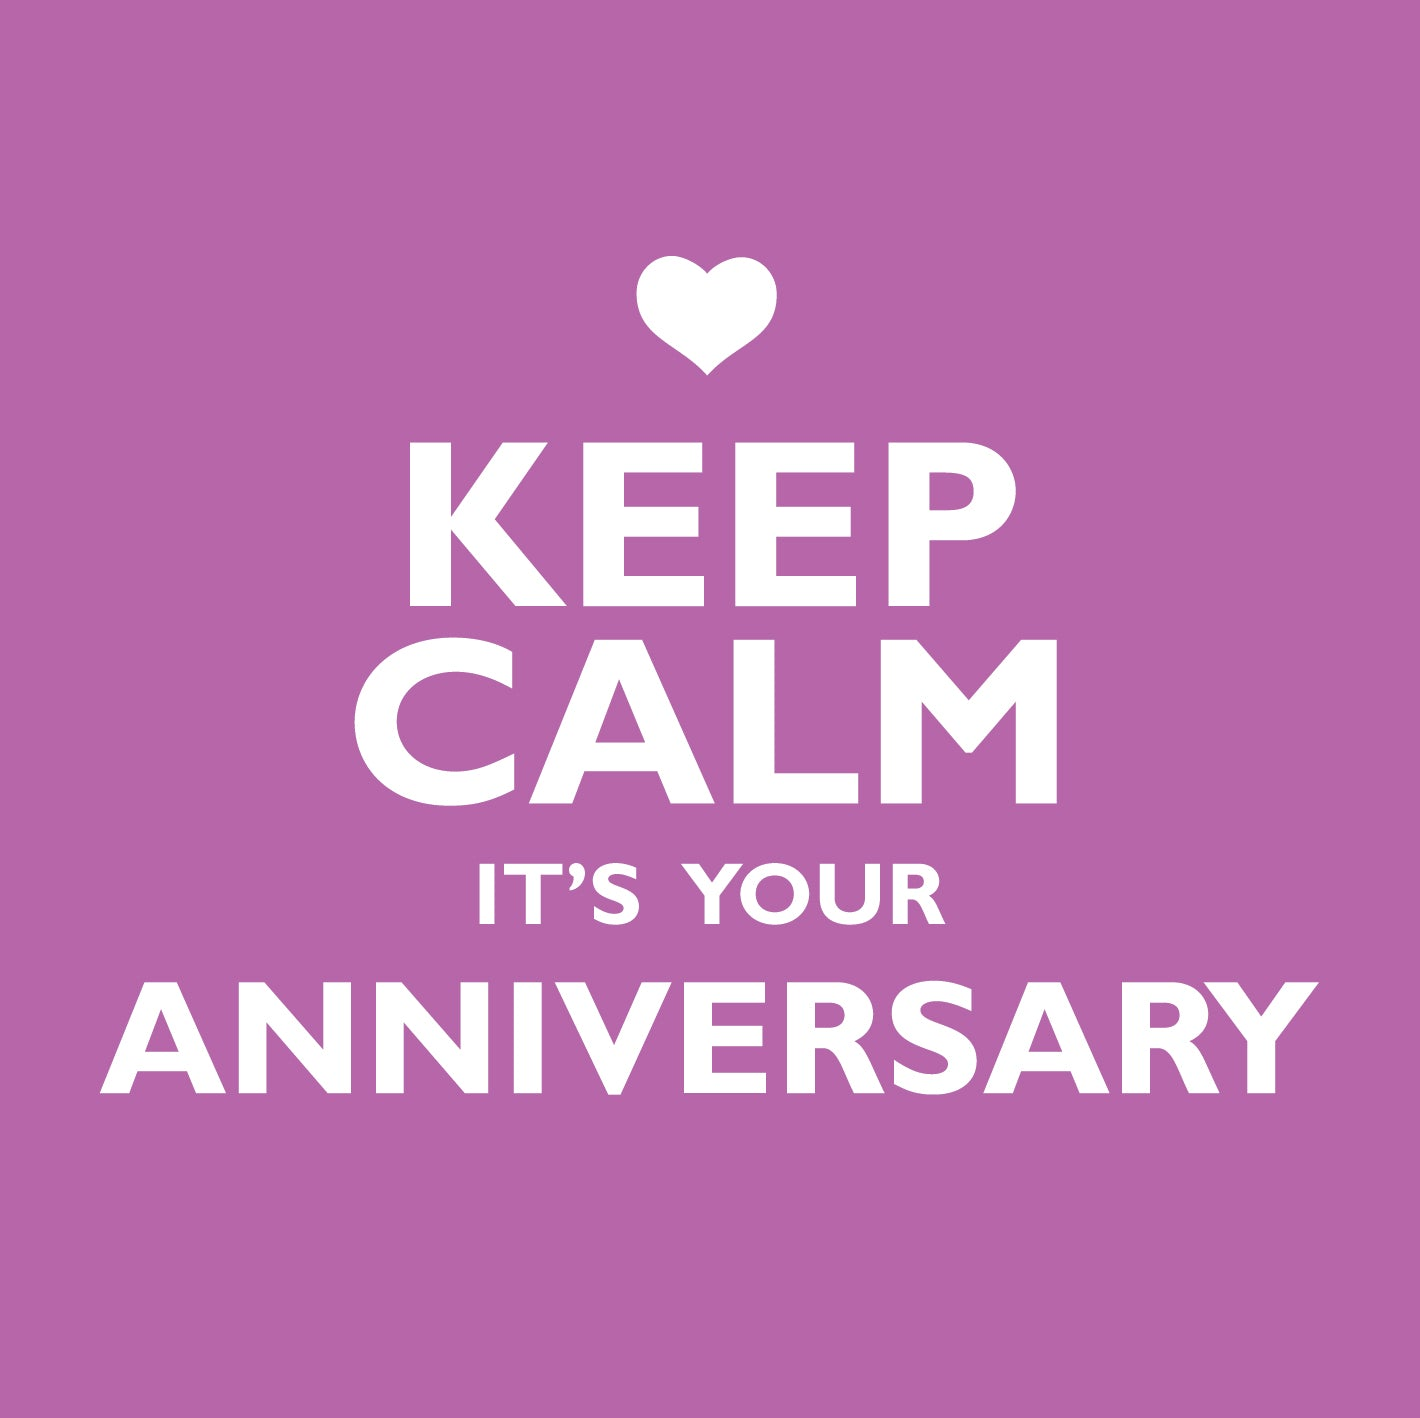 Keep Calm It's Your AnniversaryKeep Calm It's Your Anniversary